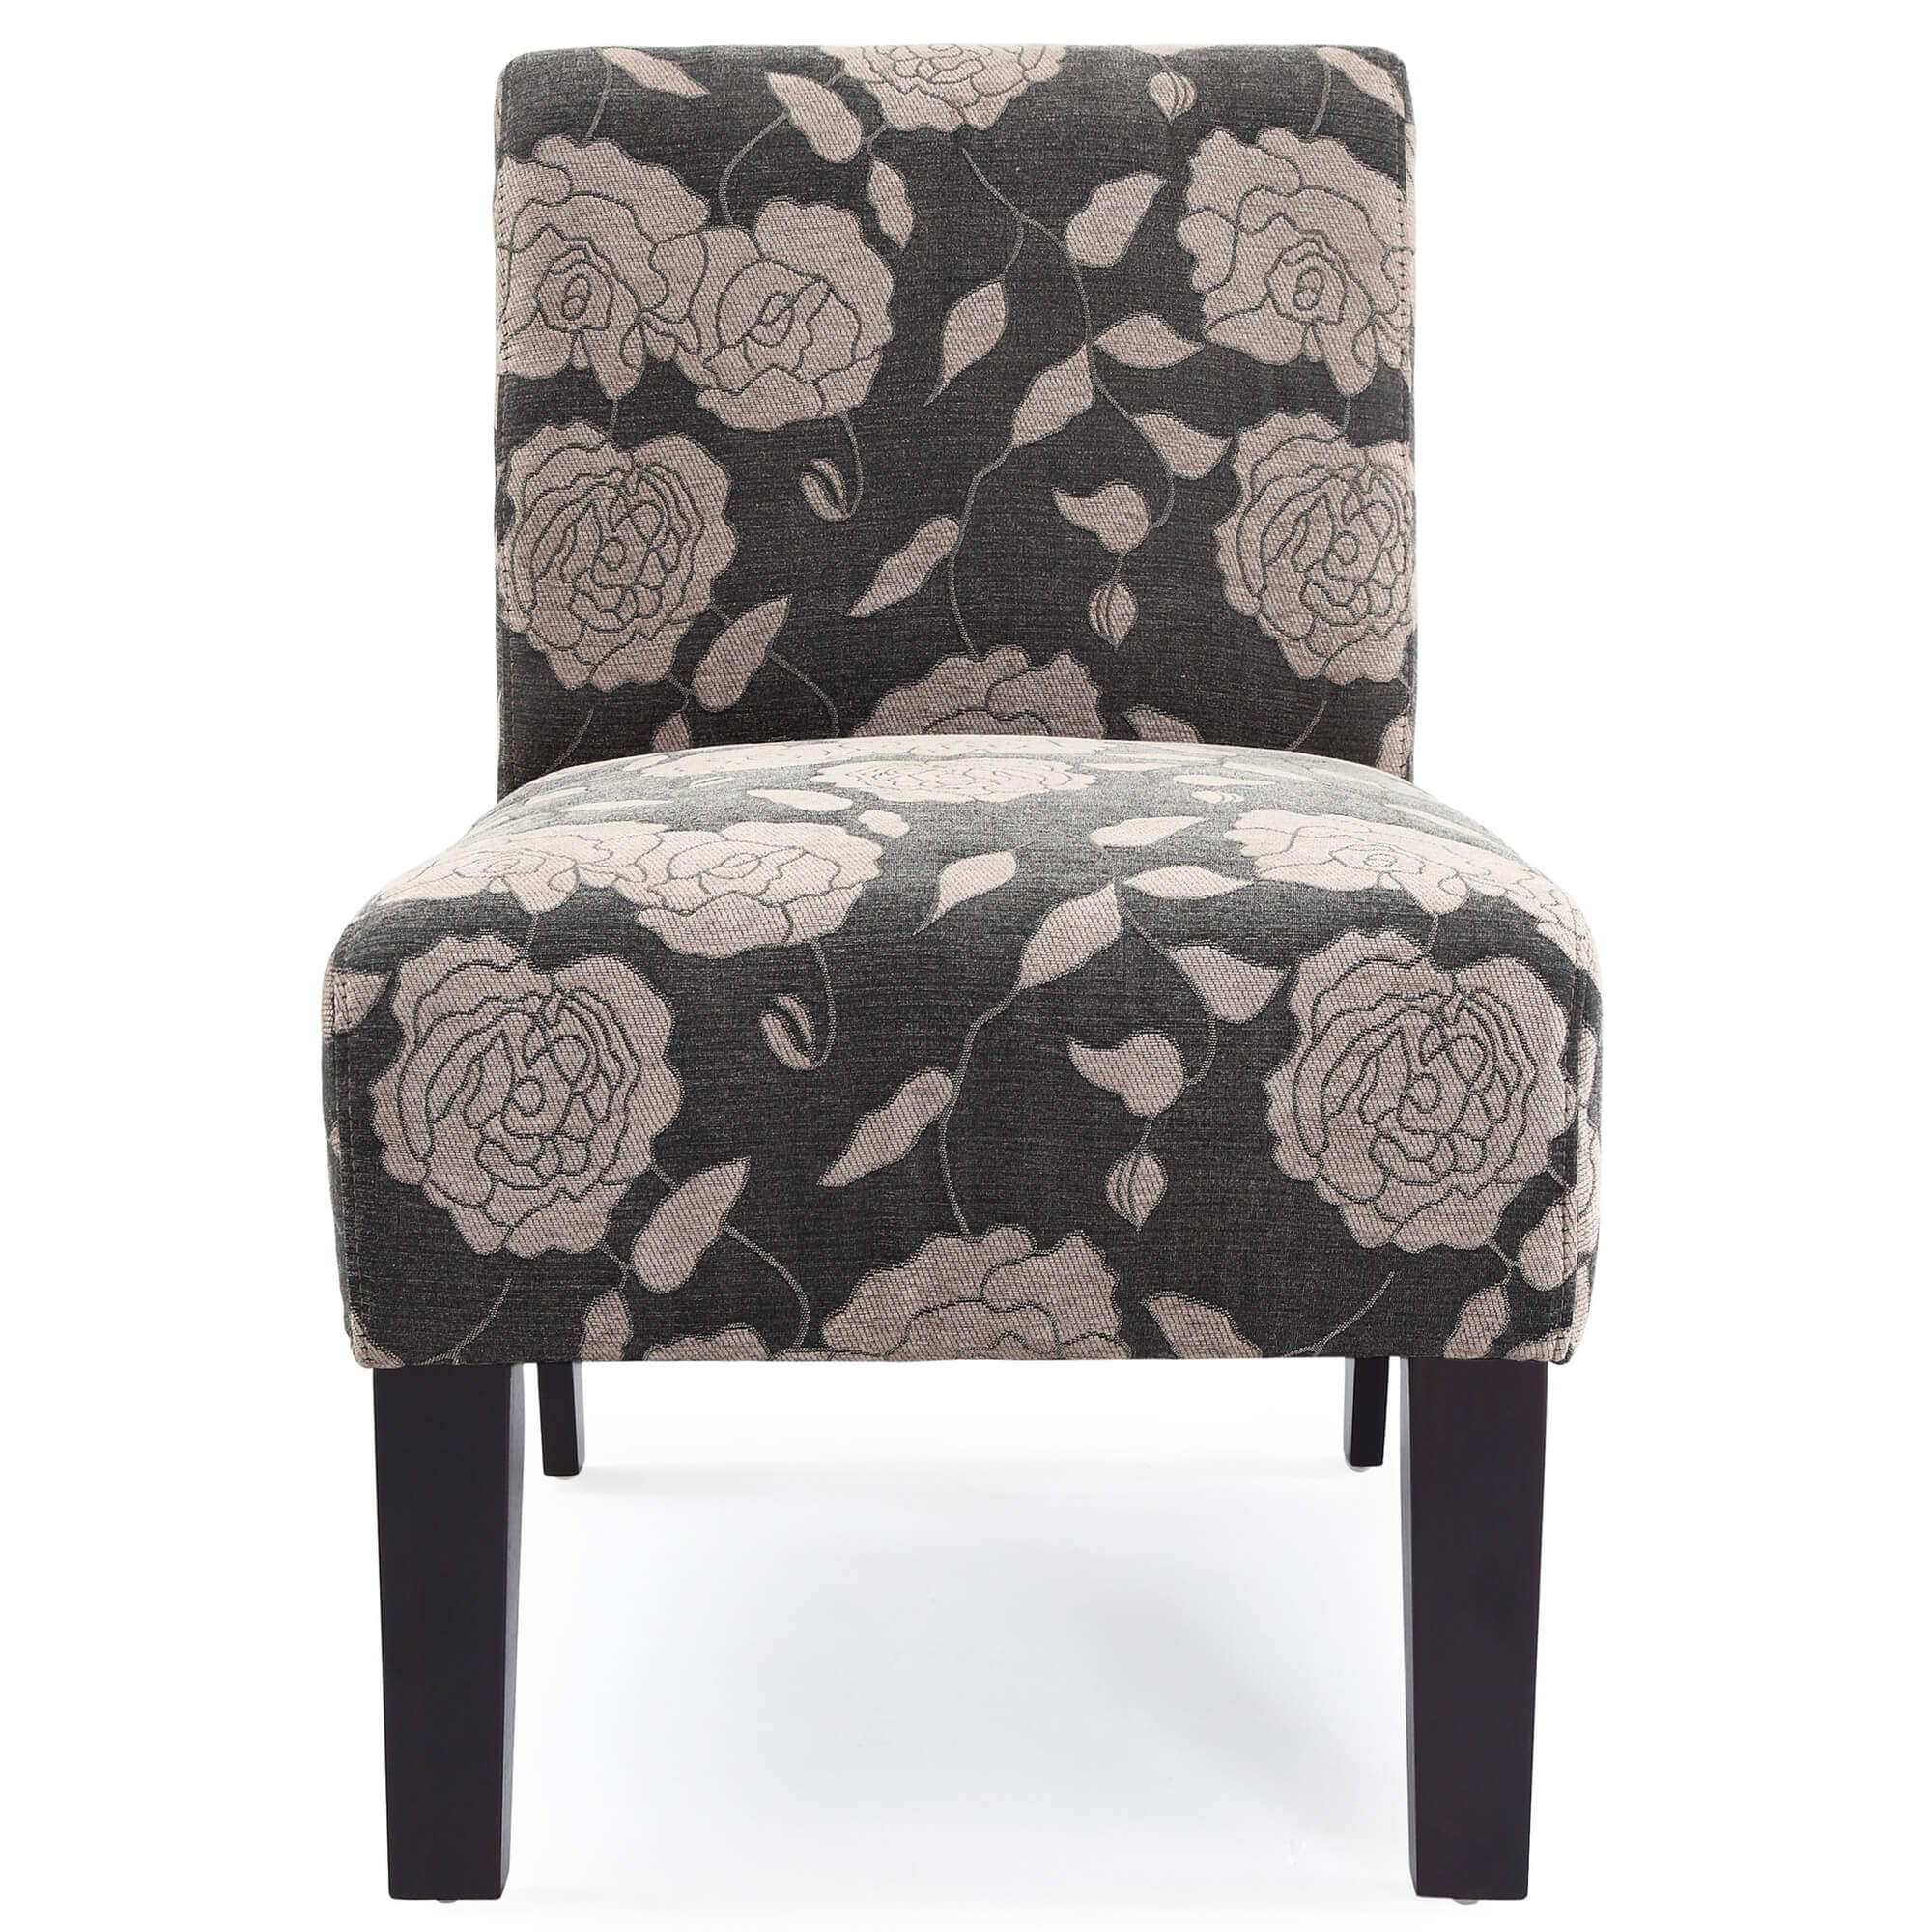 Grey Patterned Accent Chair Best Design